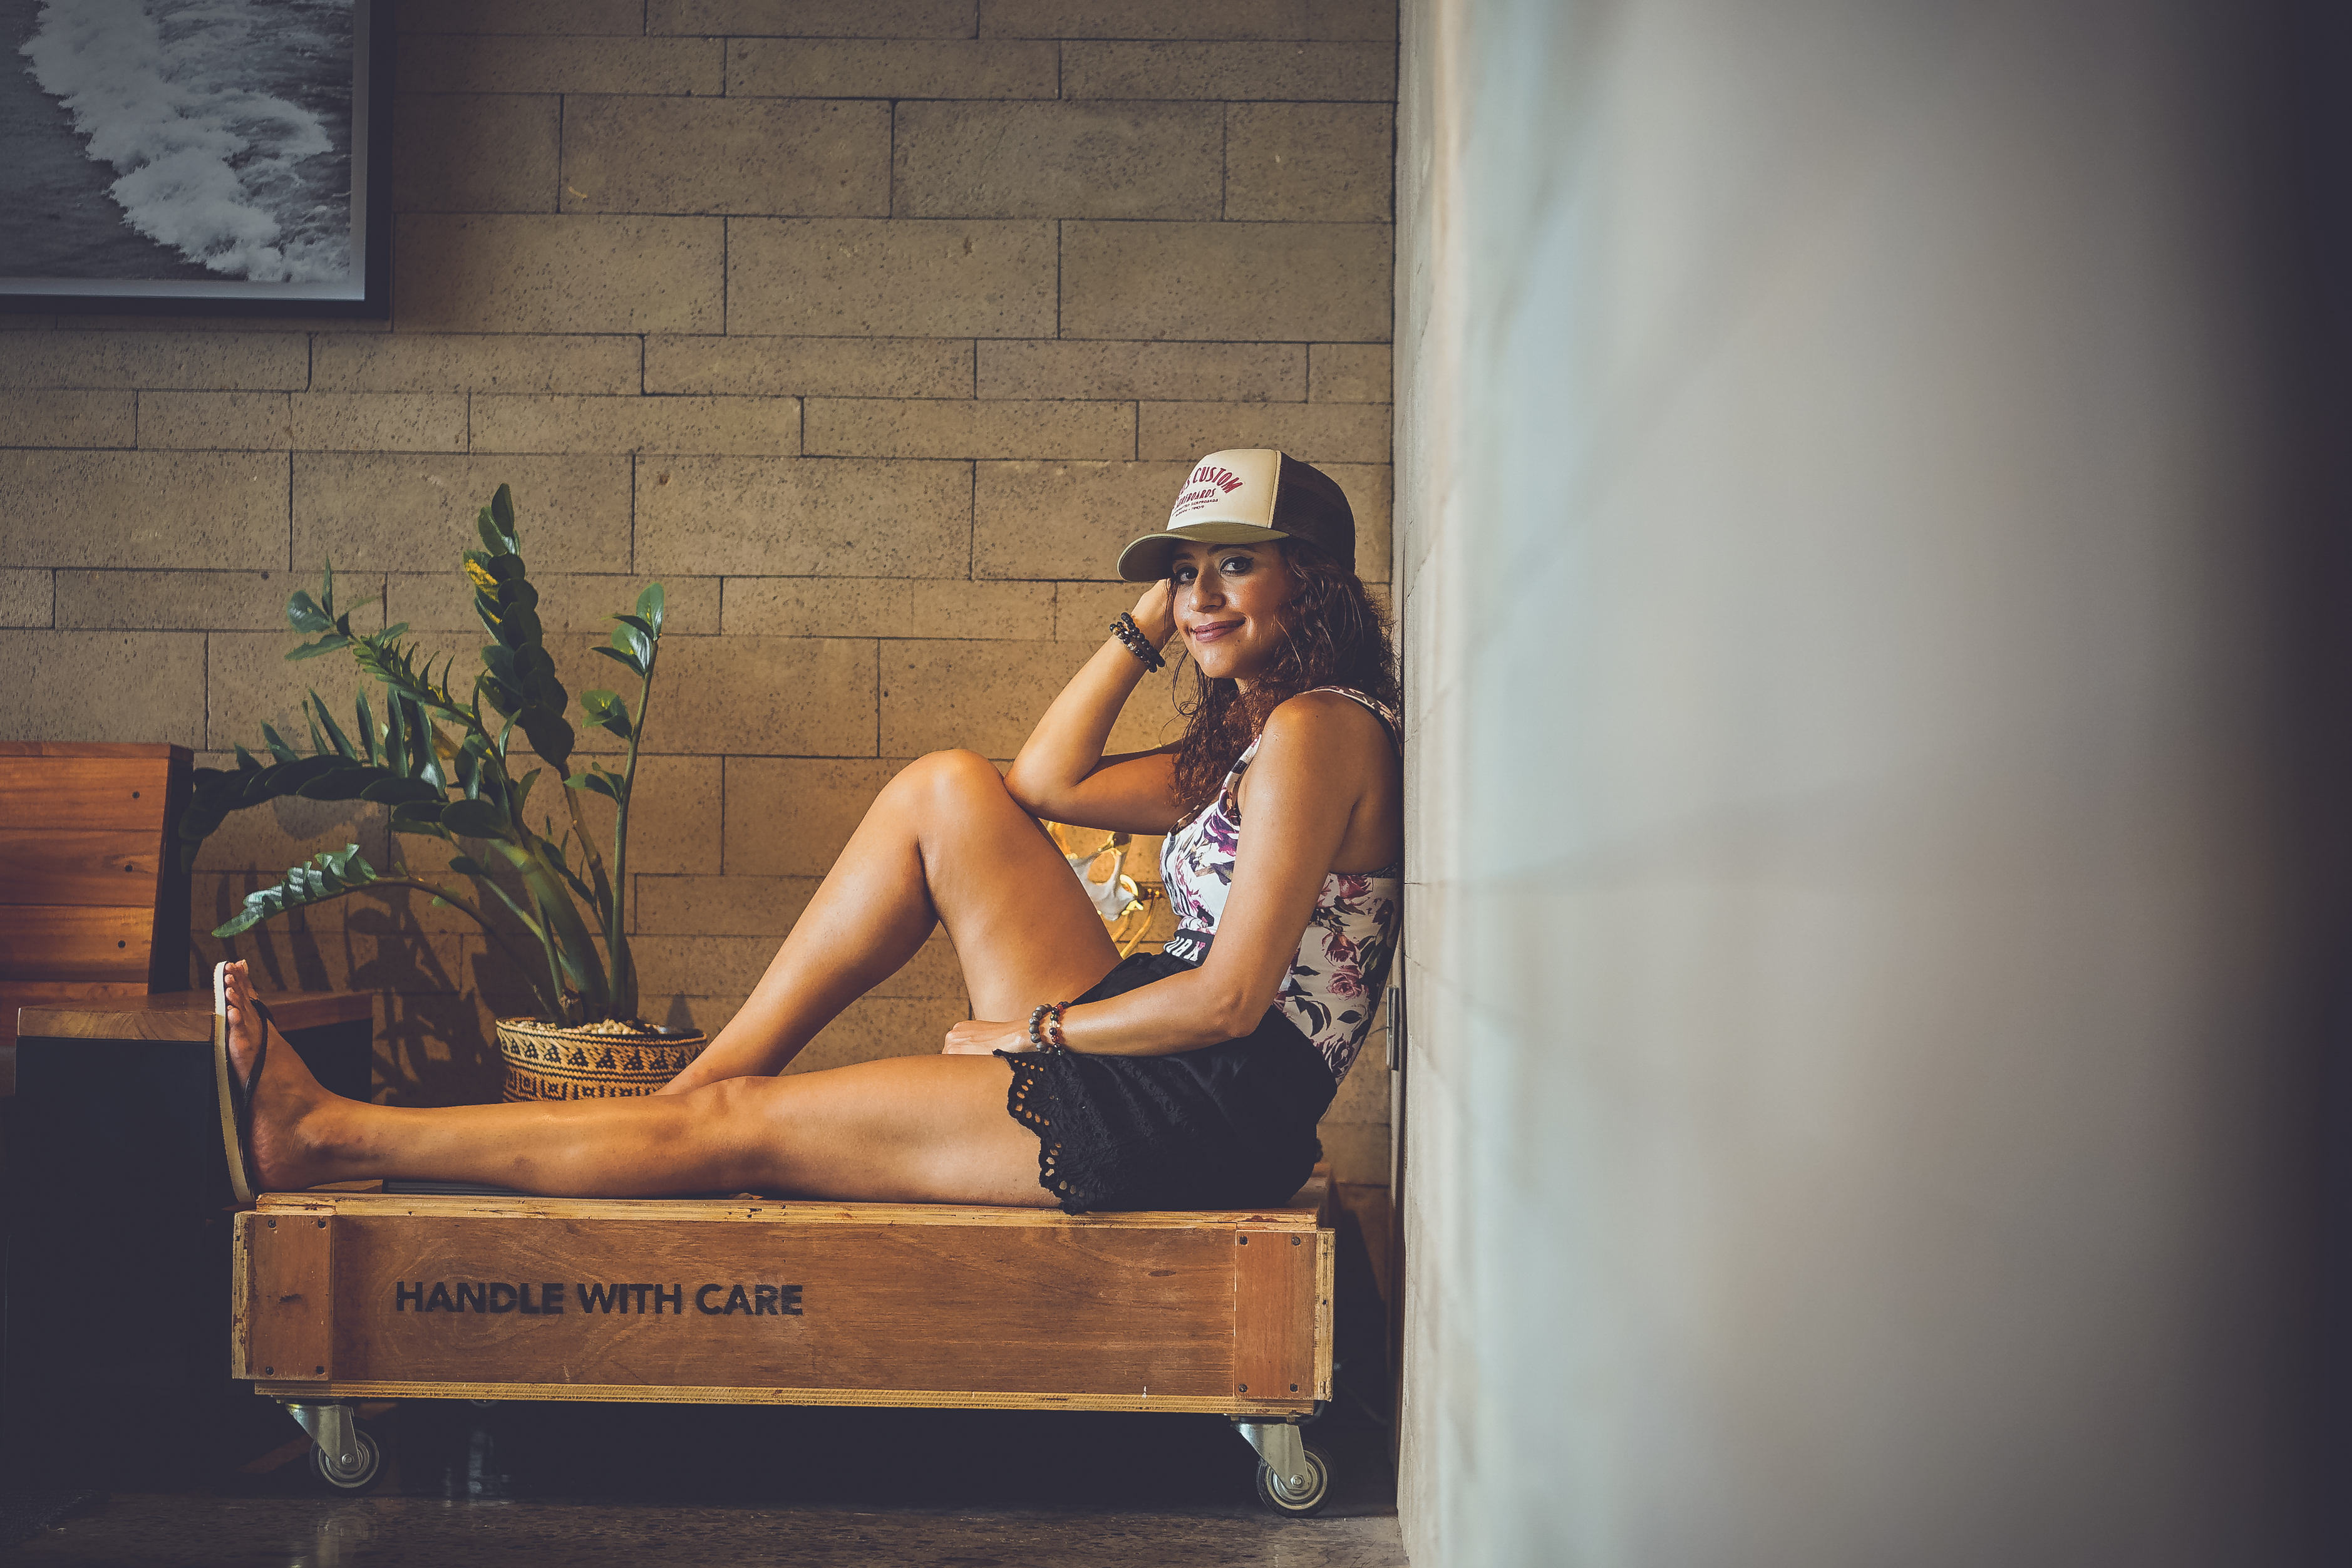 lifestyle redesign  - 685f45 34d63c38add94116903c5a33407c2030~mv2 d 3756 2504 s 4 2 - The Slow Hotel Review: A Luxury Stay in Canggu, Bali